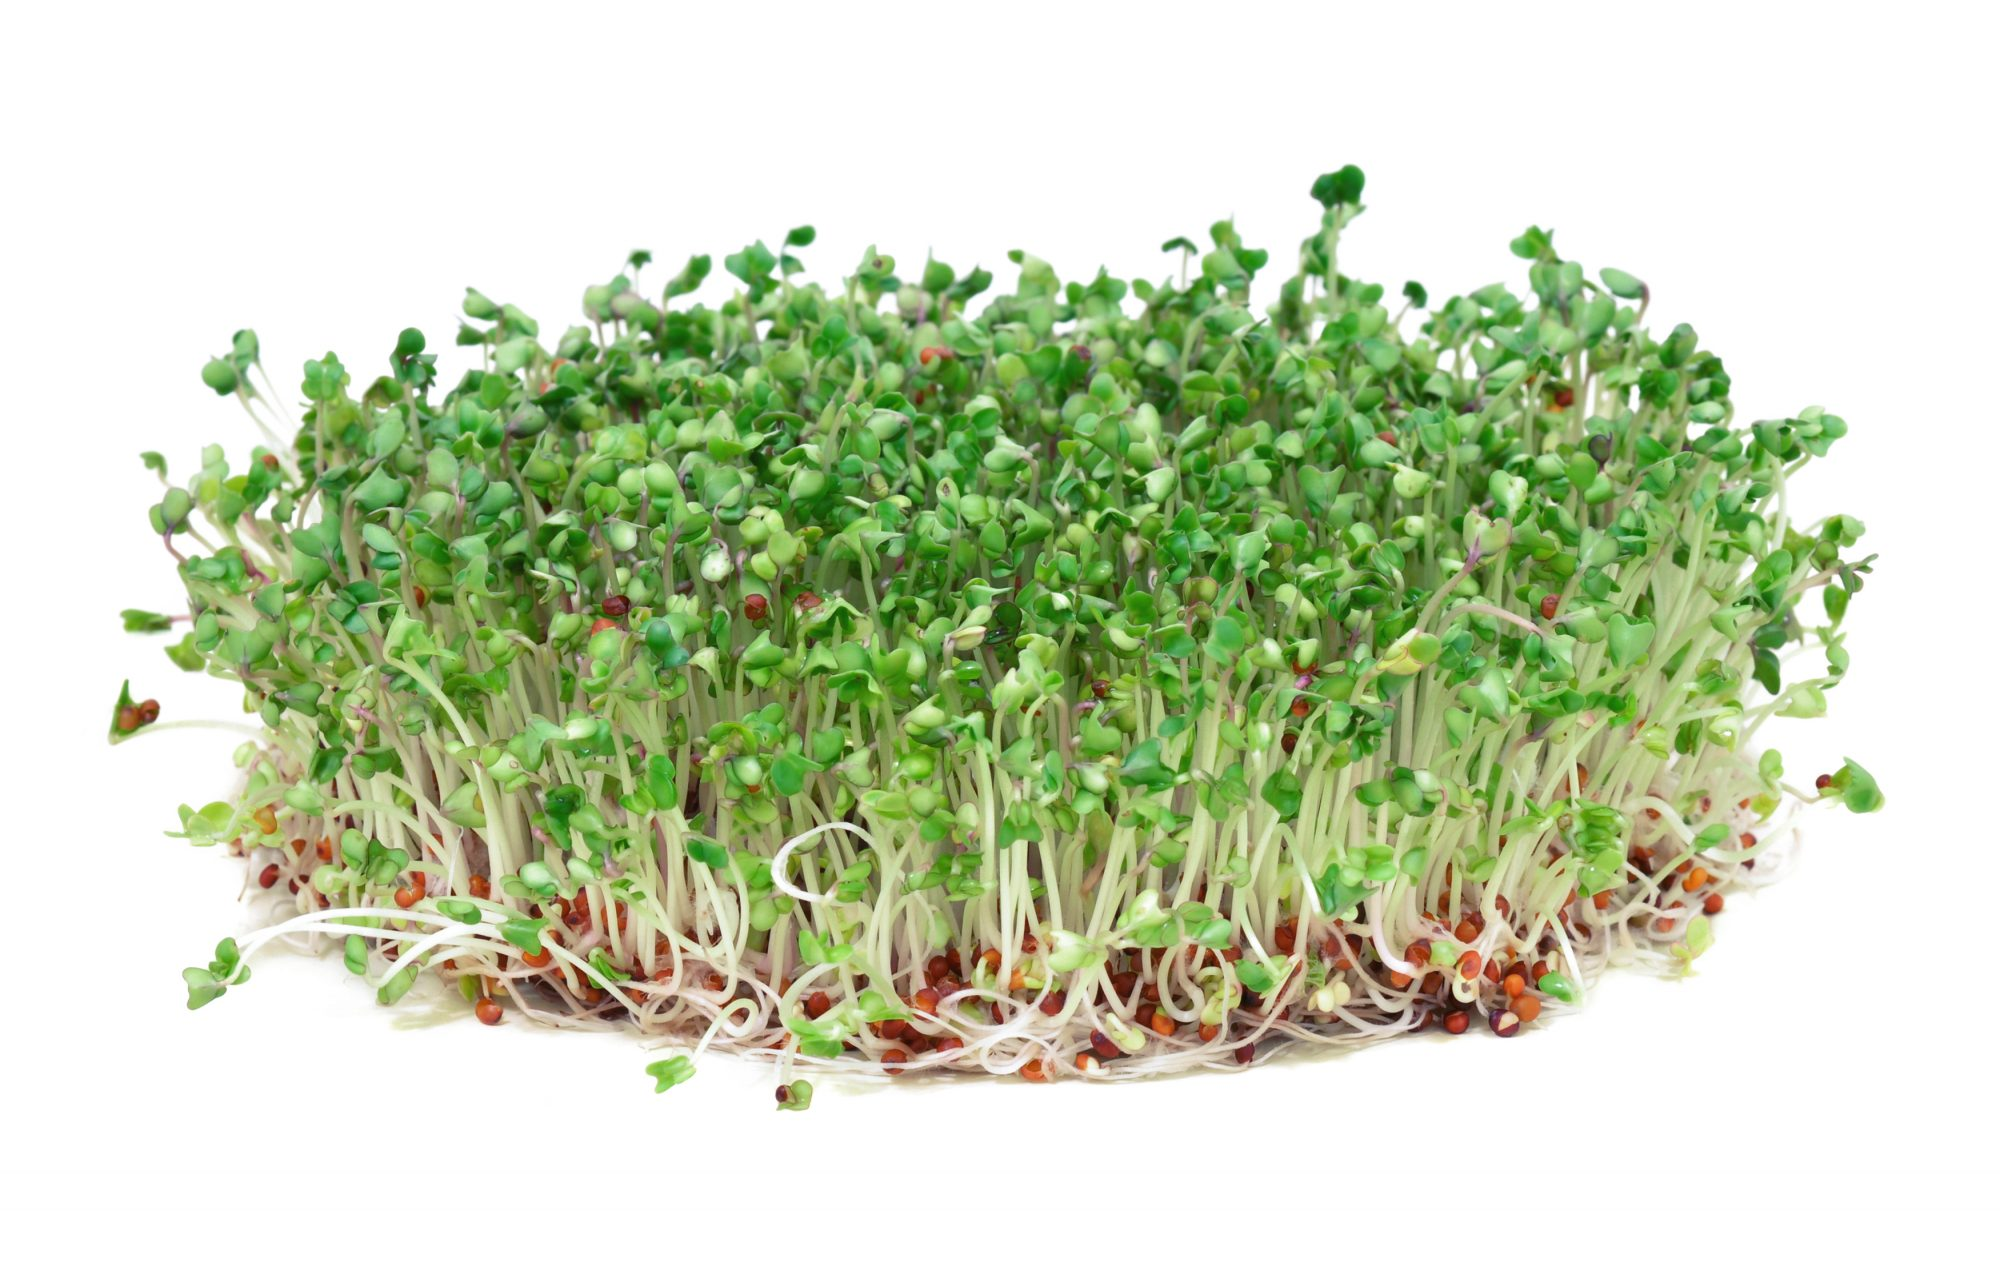 getty-broccoli-sprouts-image